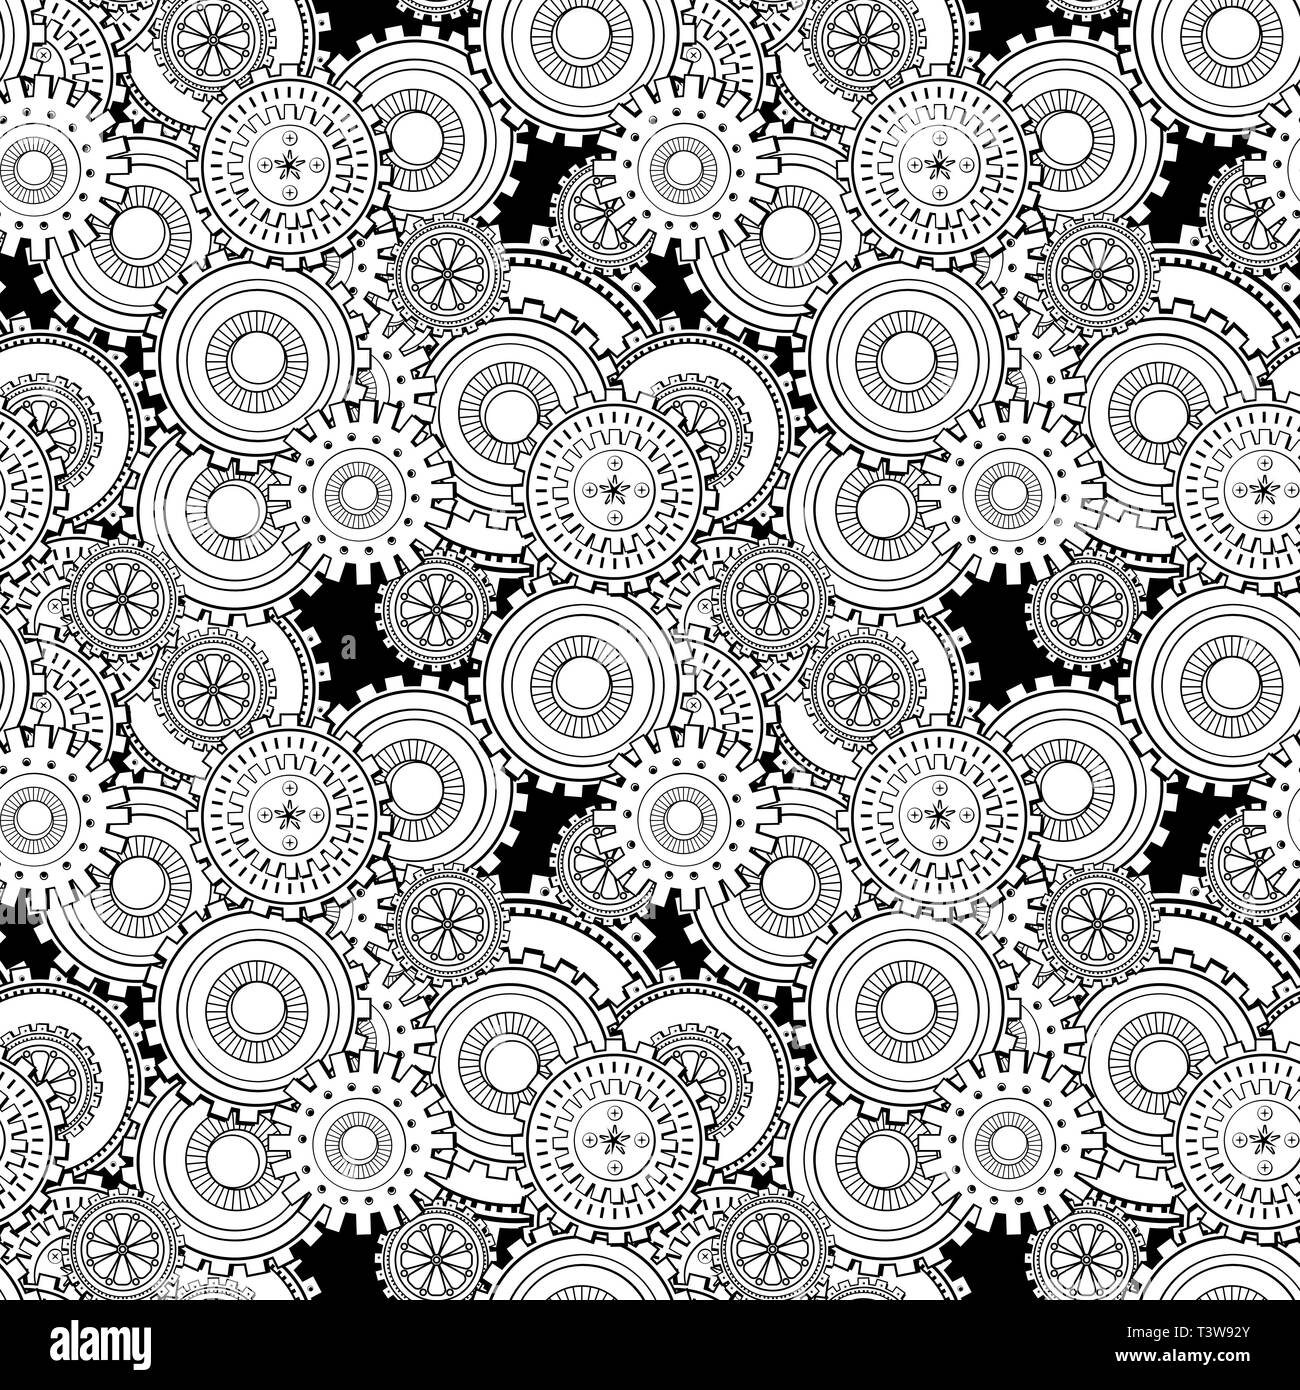 Cogwheels seamless pattern. Cogs and gears steampunk texture. Mechanism black and white ink pen drawing. Coloring book abstract illustration. Textile, wrapping paper, background monochrome vector fill - Stock Image